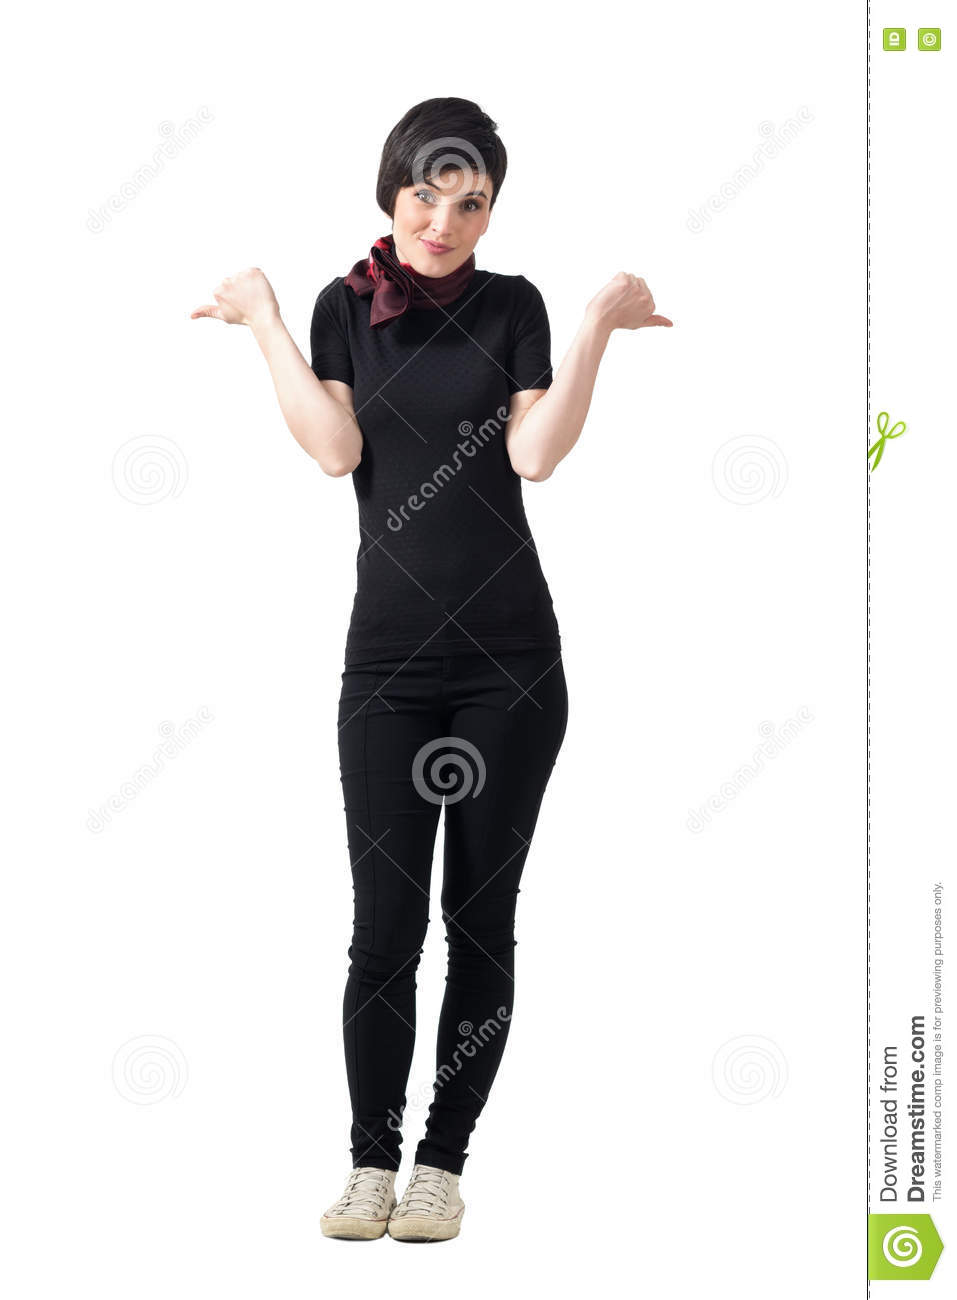 Confused young short hair woman hesitate to show thumbs up or thumbs down gesture